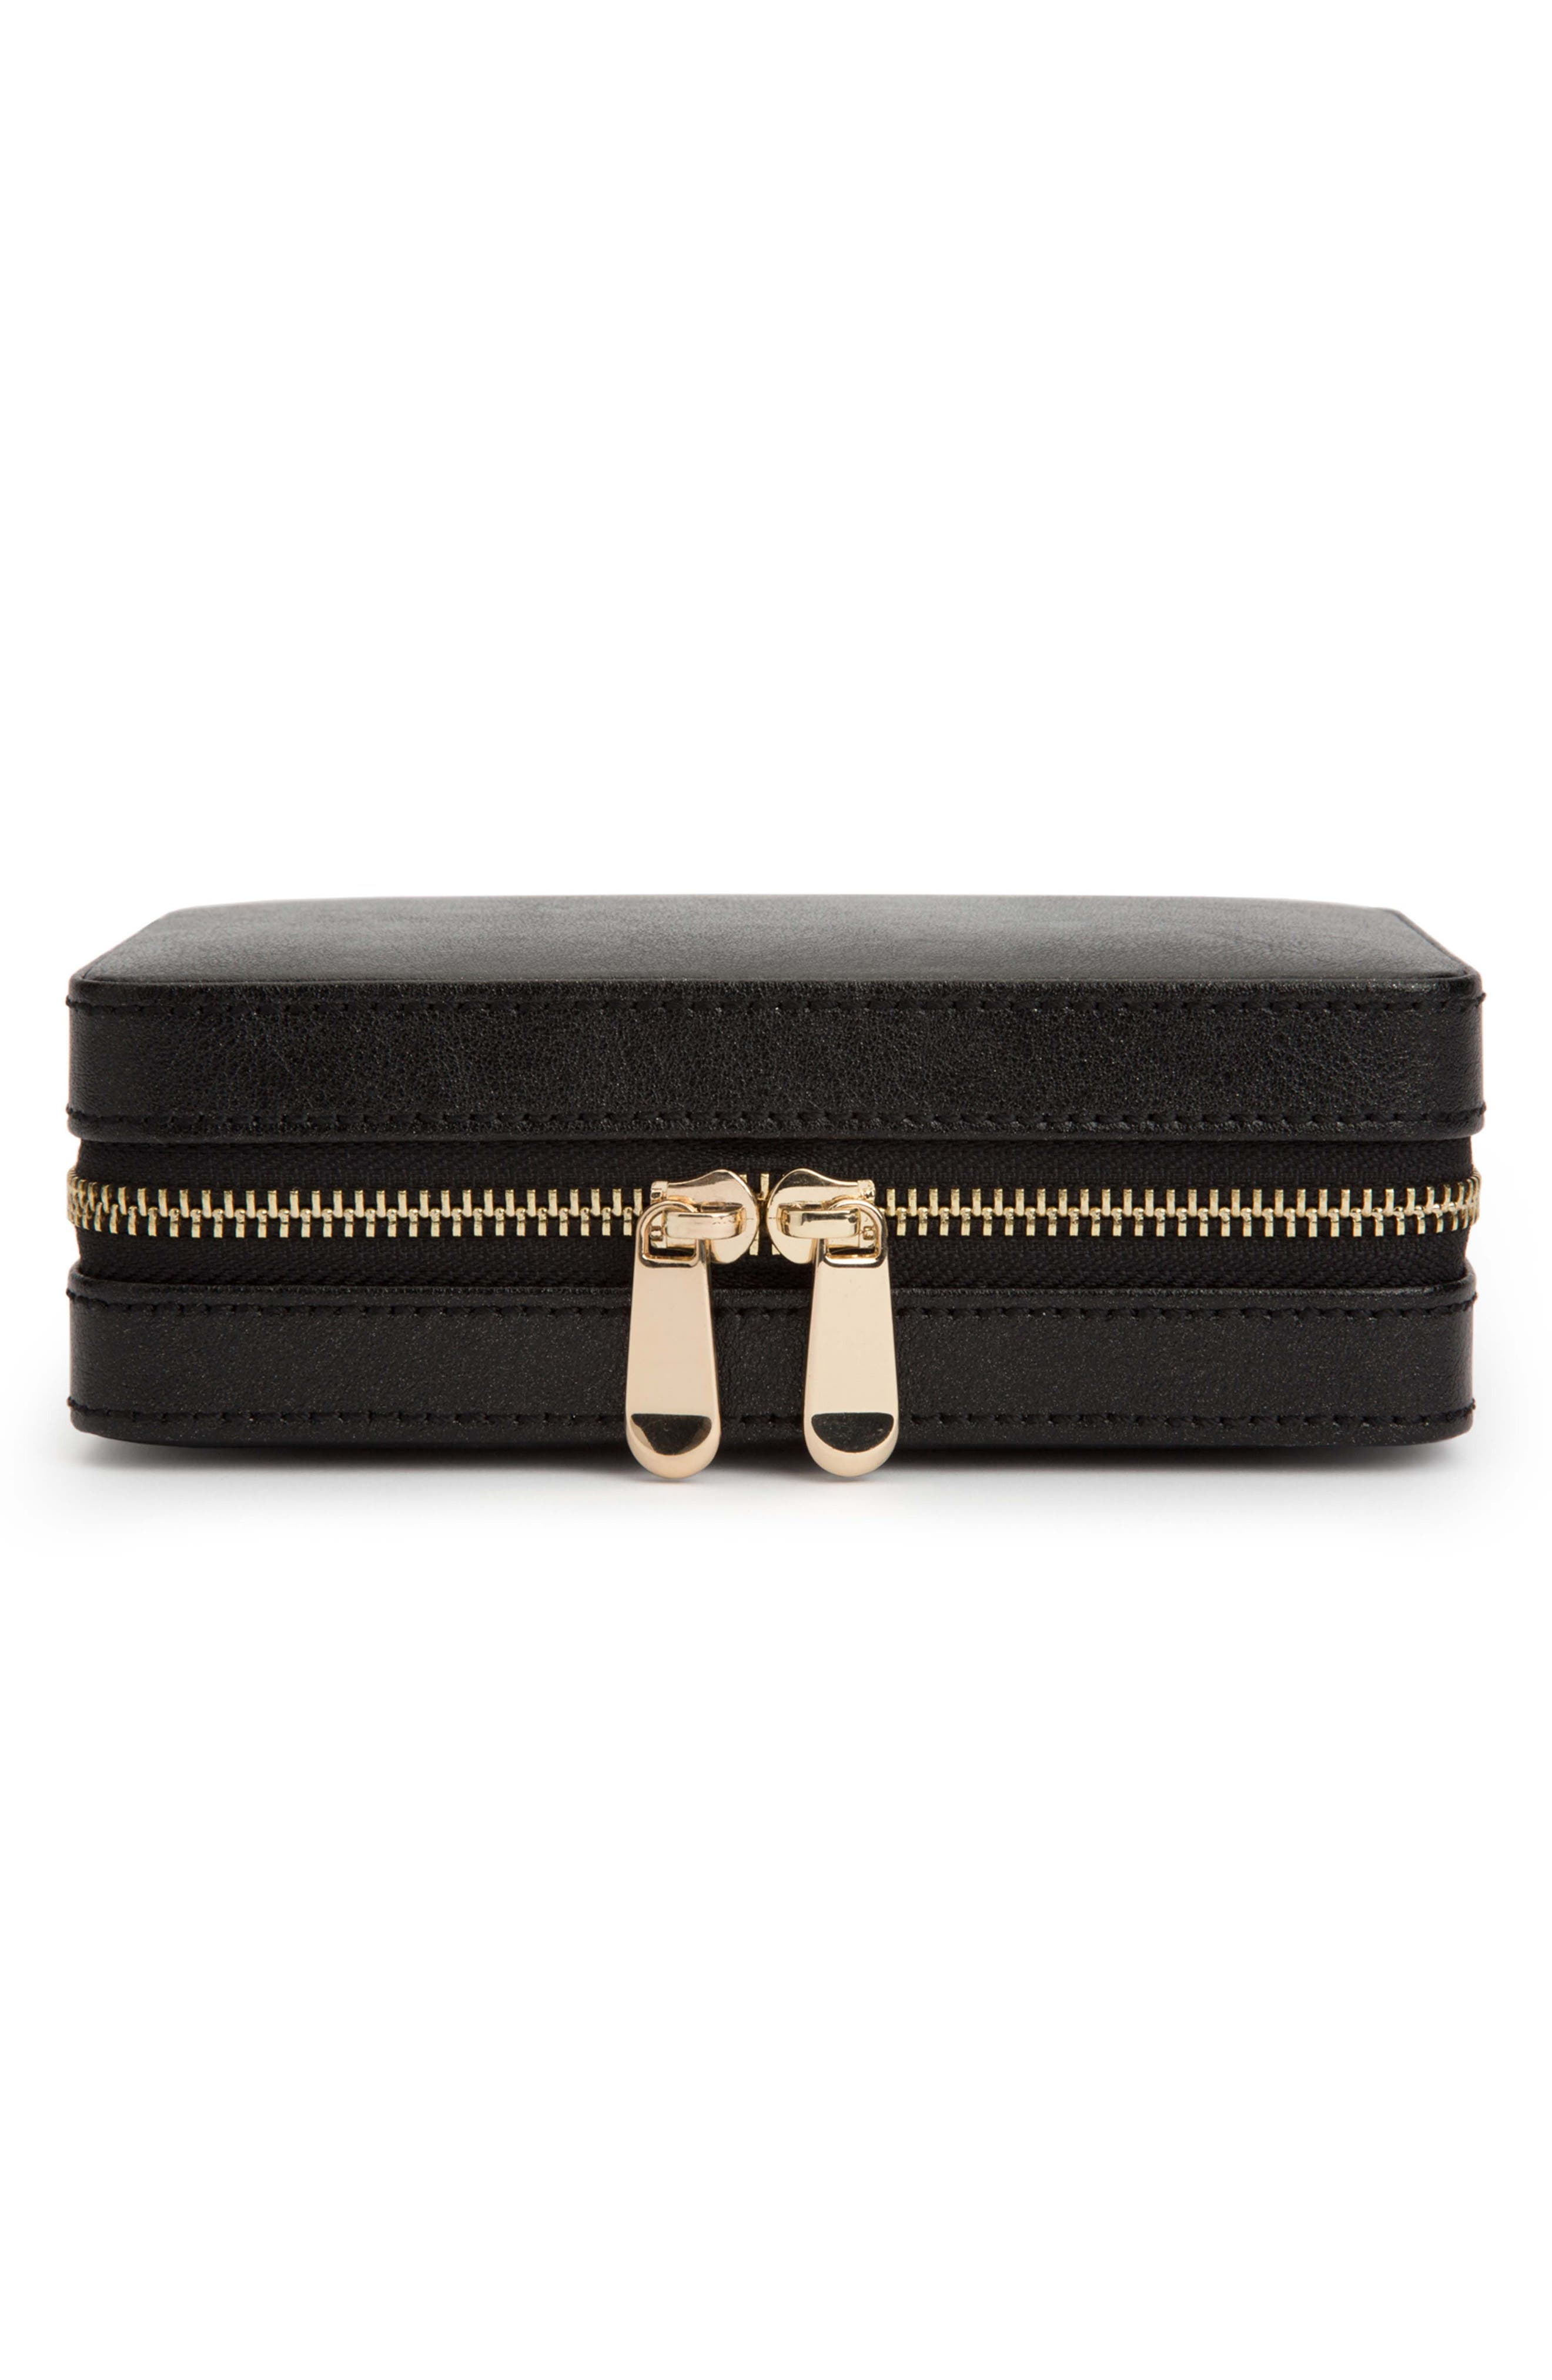 Palermo Zip Jewelry Case,                         Main,                         color, BLACK